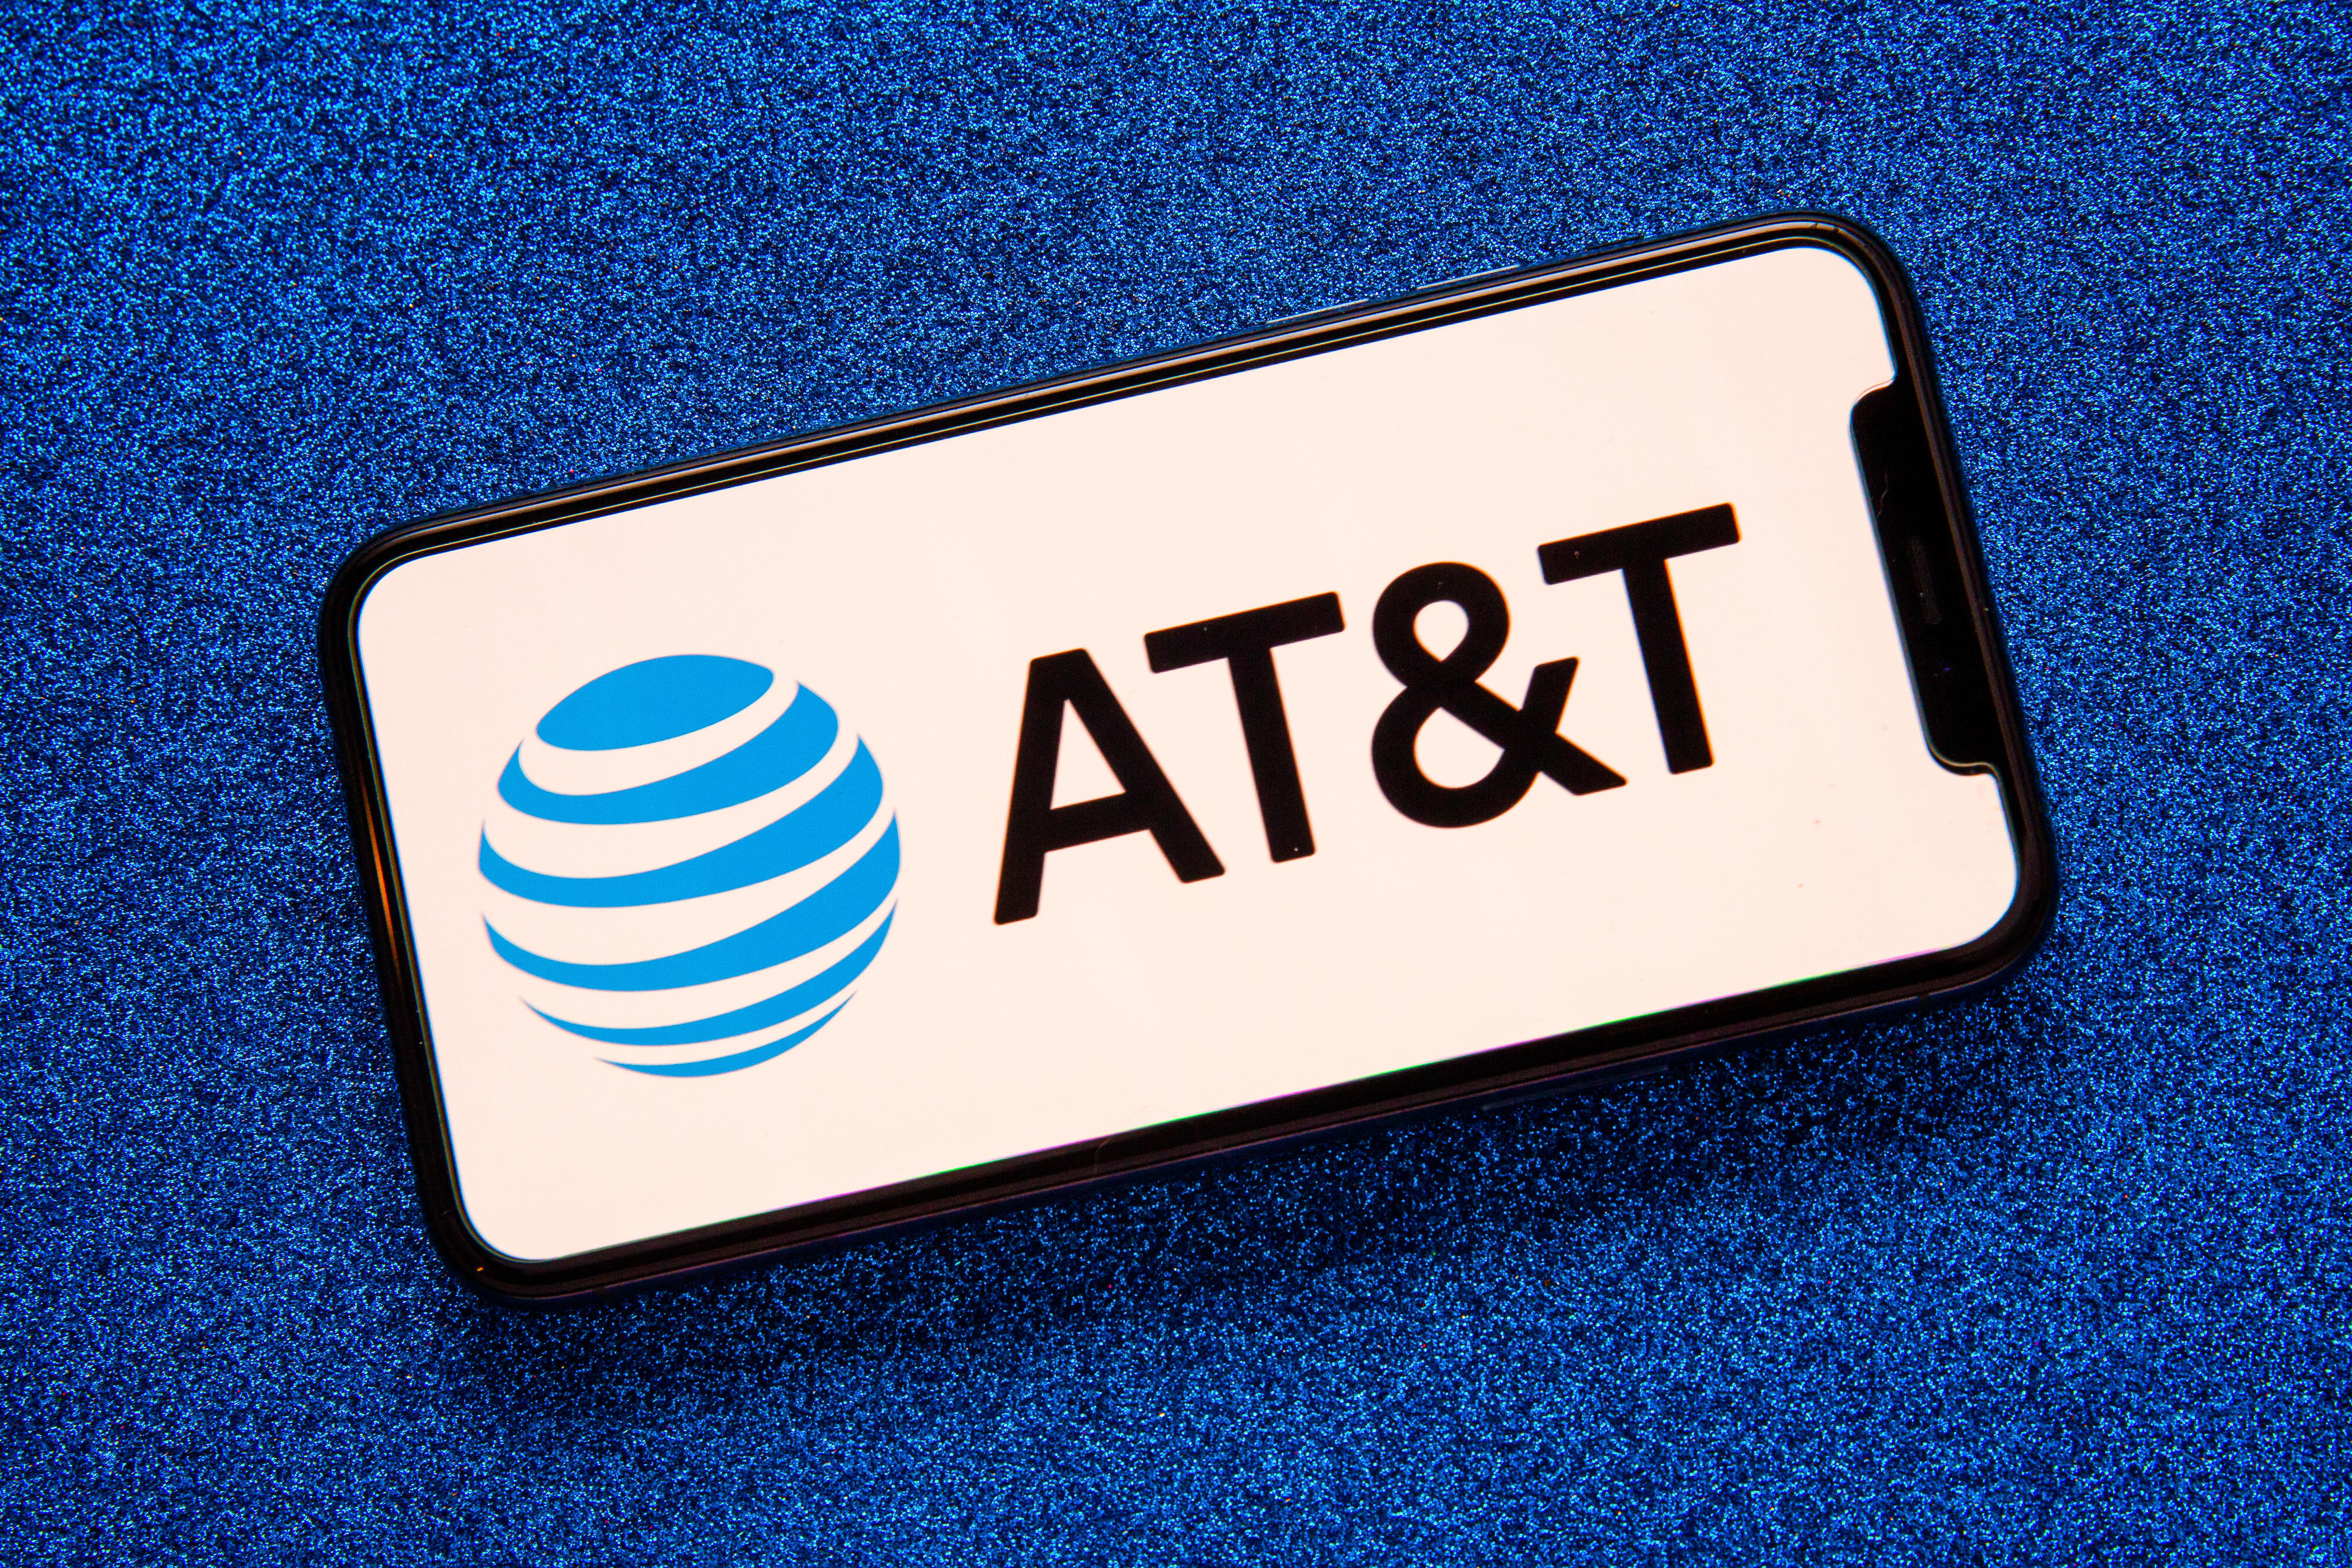 018-att-network-mobile-carrier-logo-2021